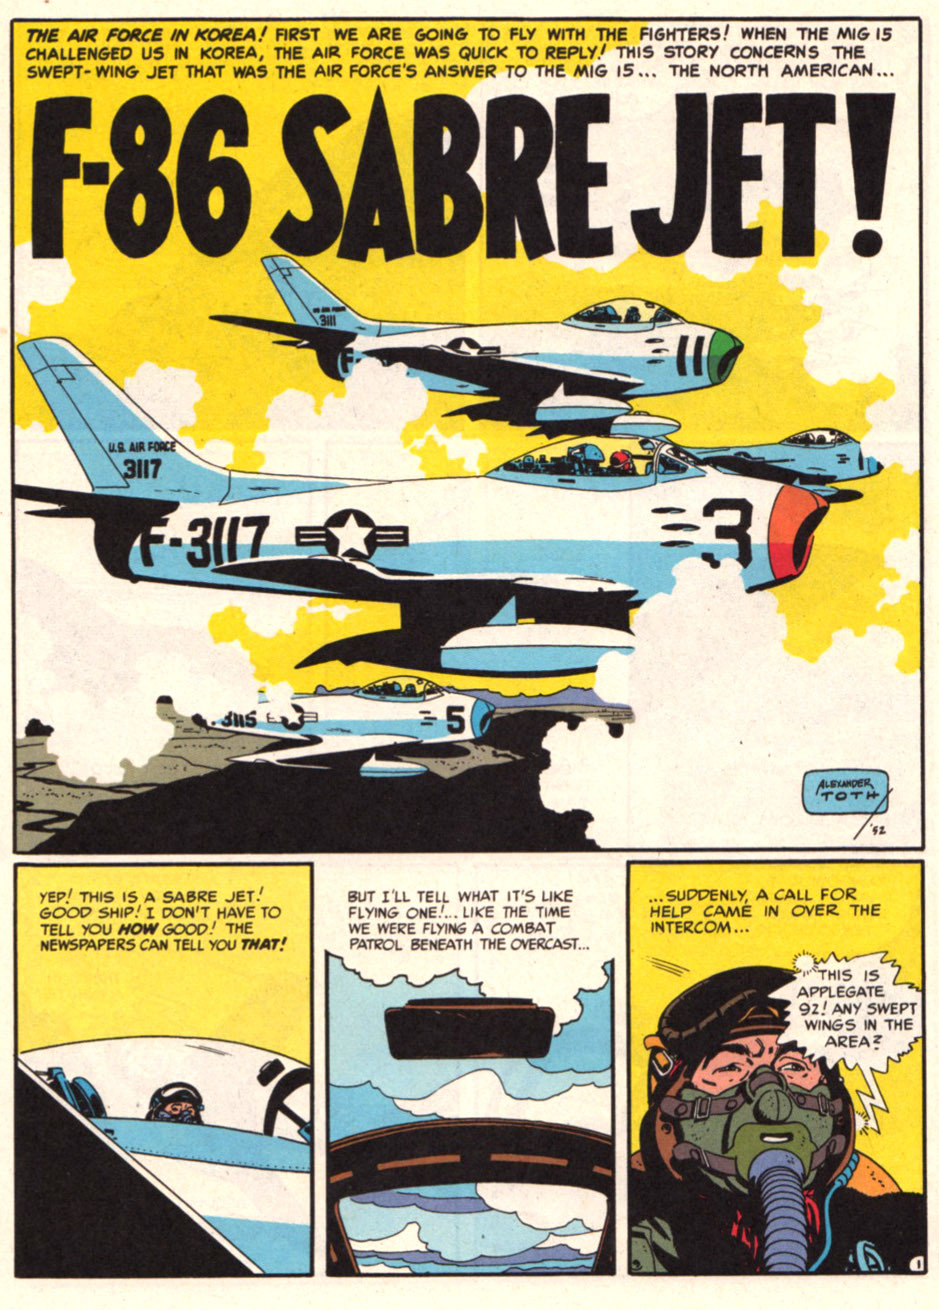 tothlove:  F86 Sabre Jet - Harvey Kurtzman and Alex Toth page 1